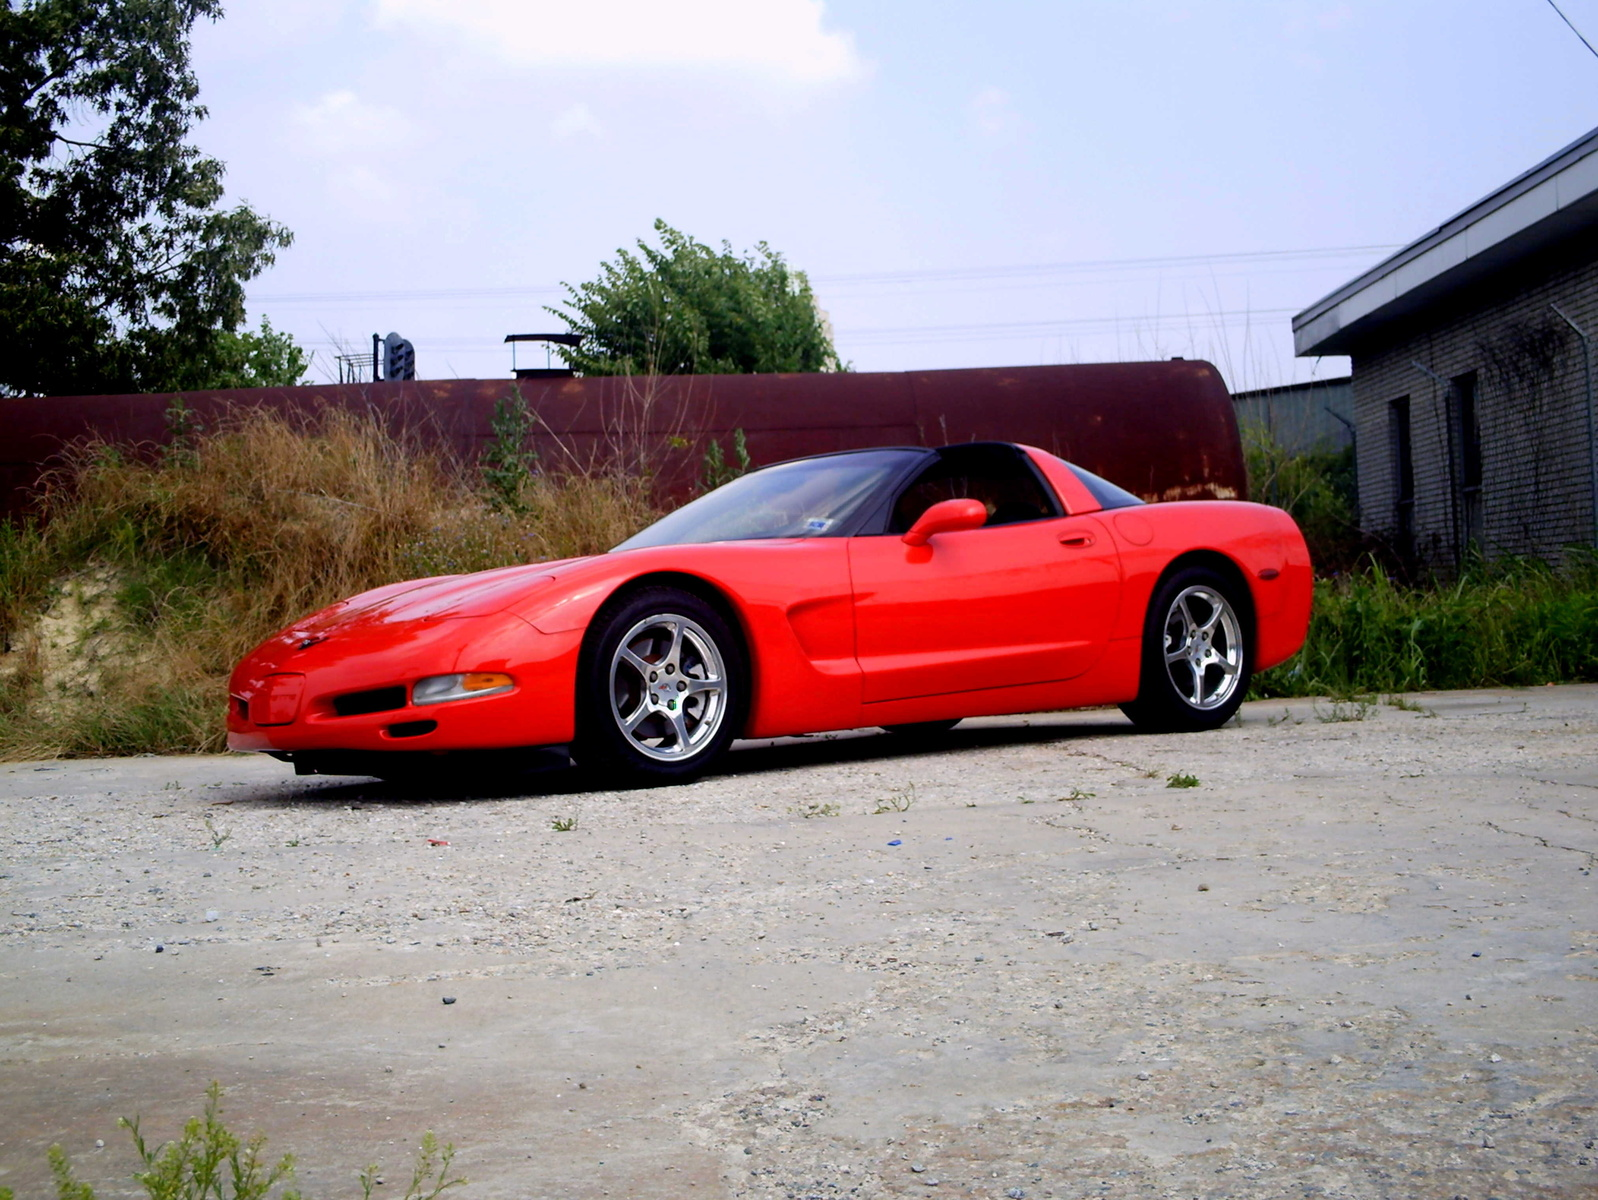 2001 Chevrolet Corvette Coupe picture, exterior